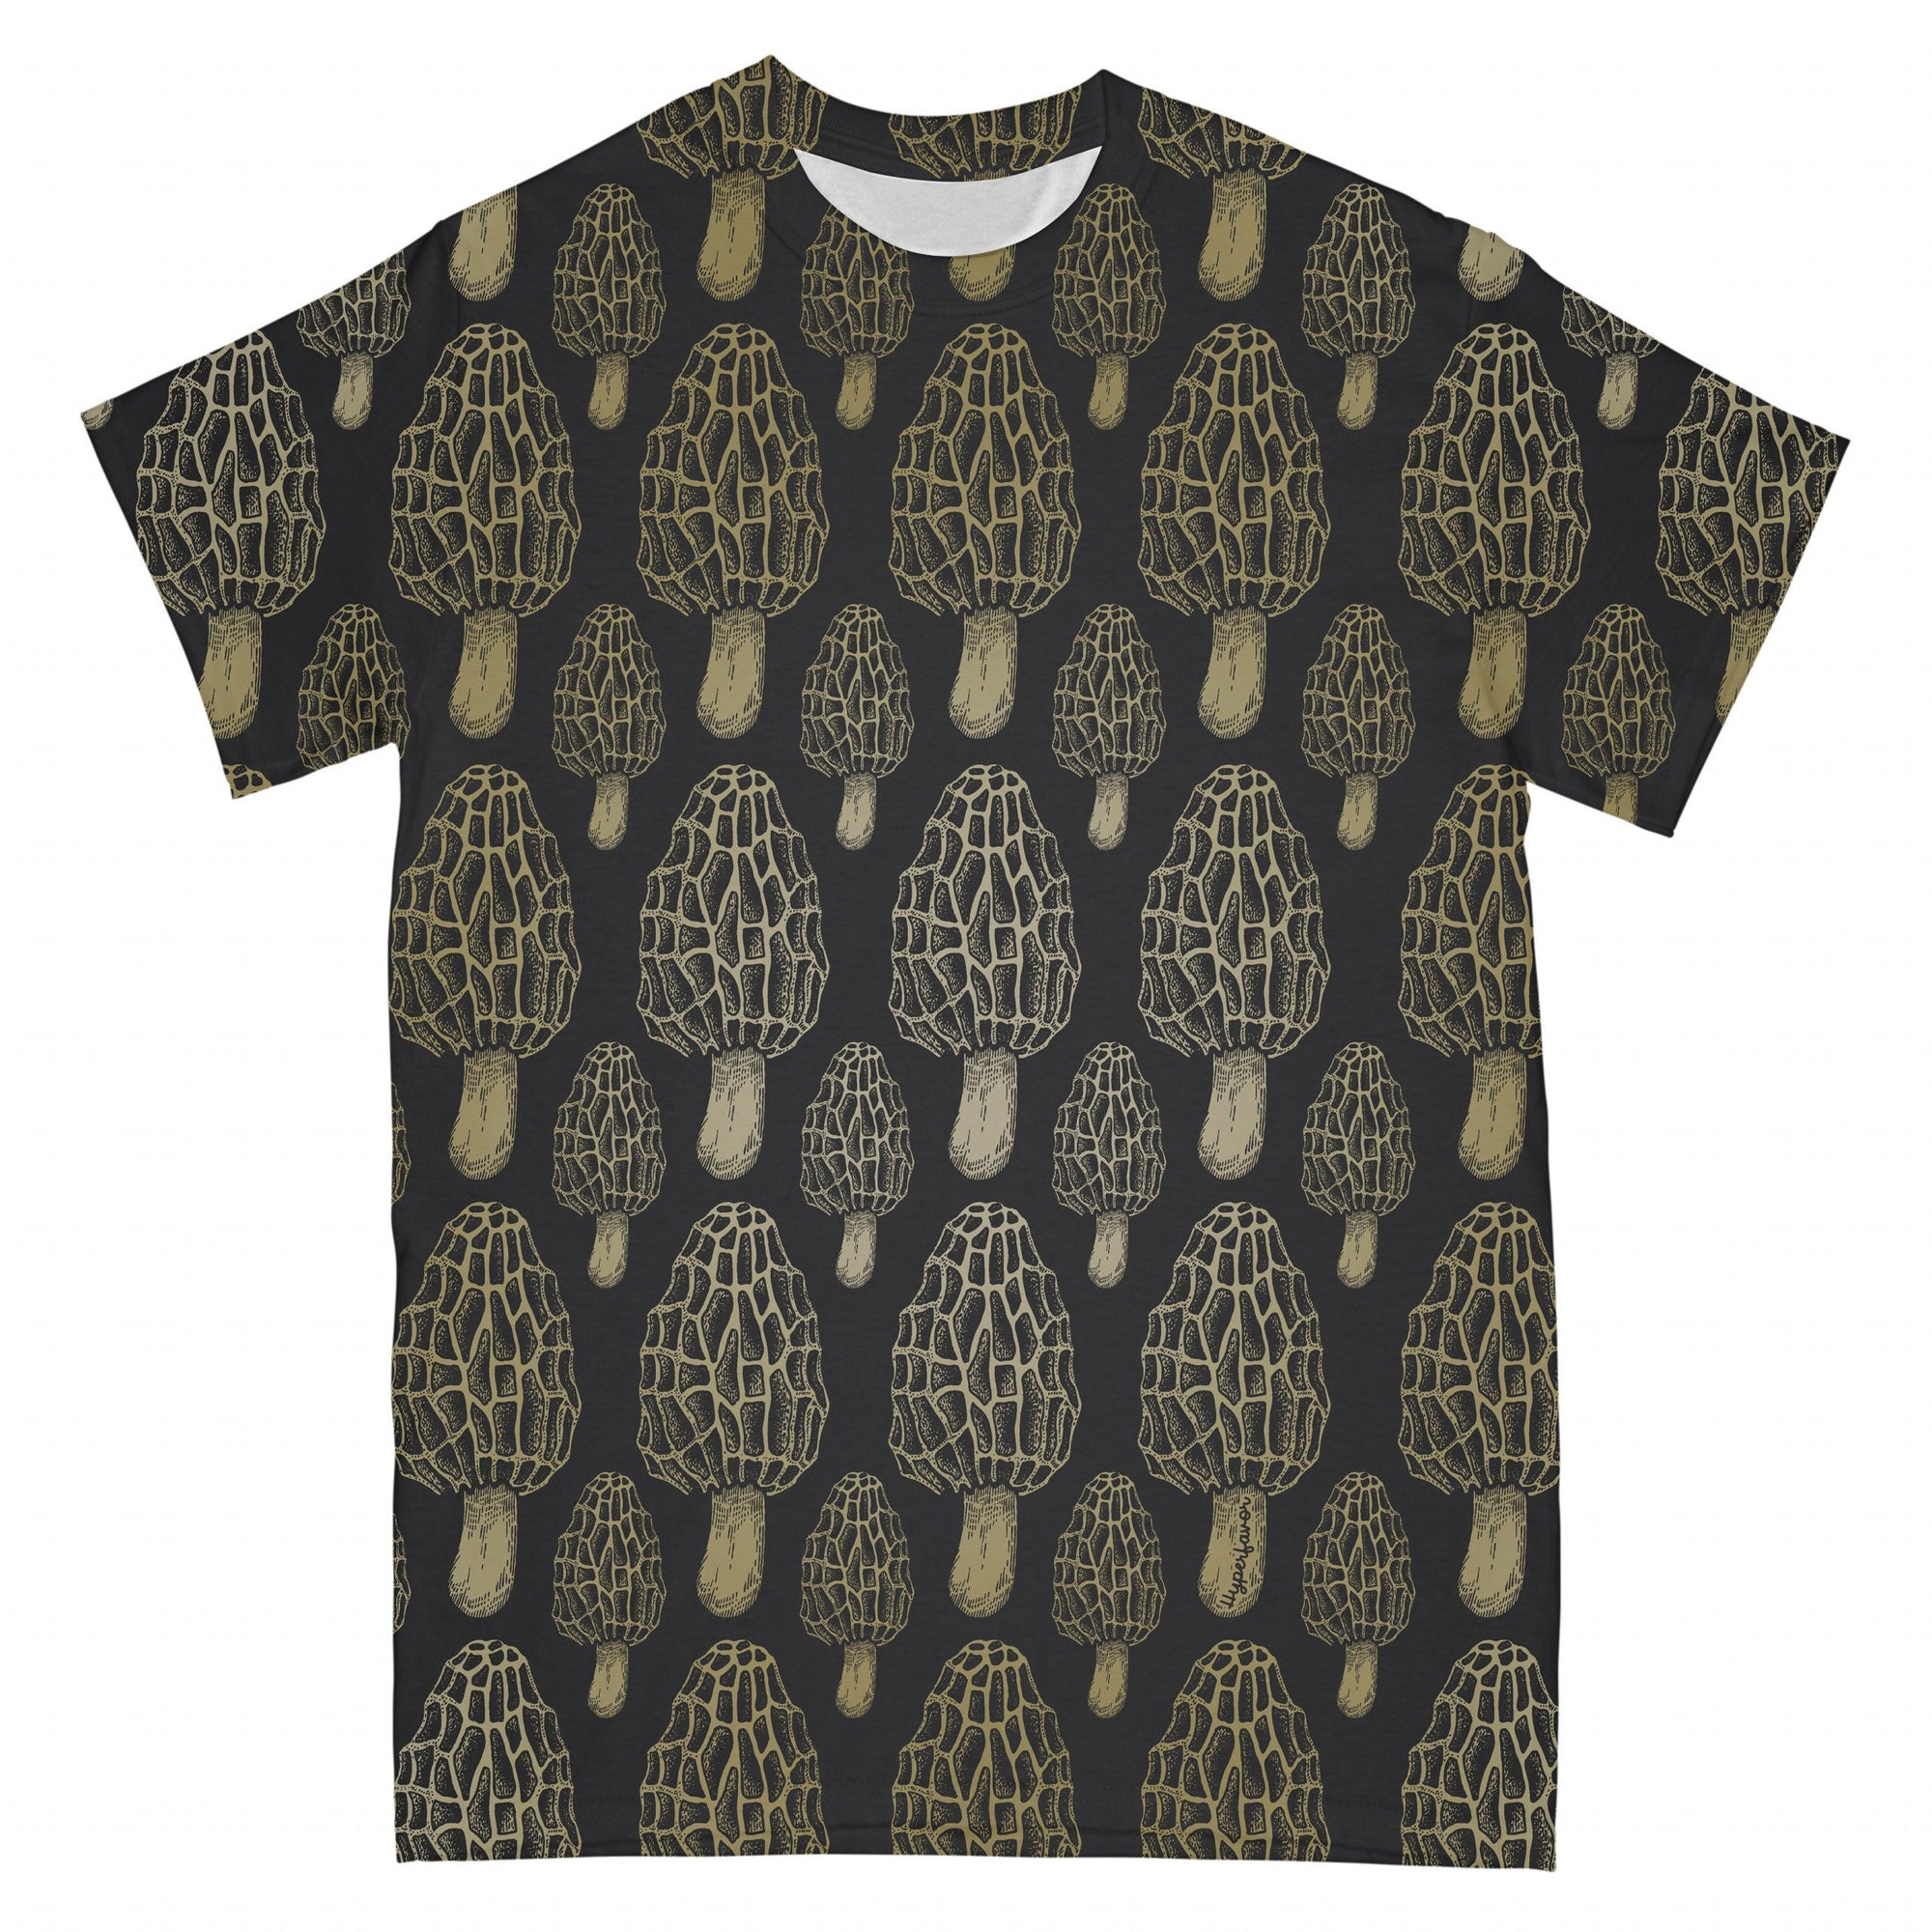 Morel Mushroom Gold EZ01 2403 I All Over T-shirt